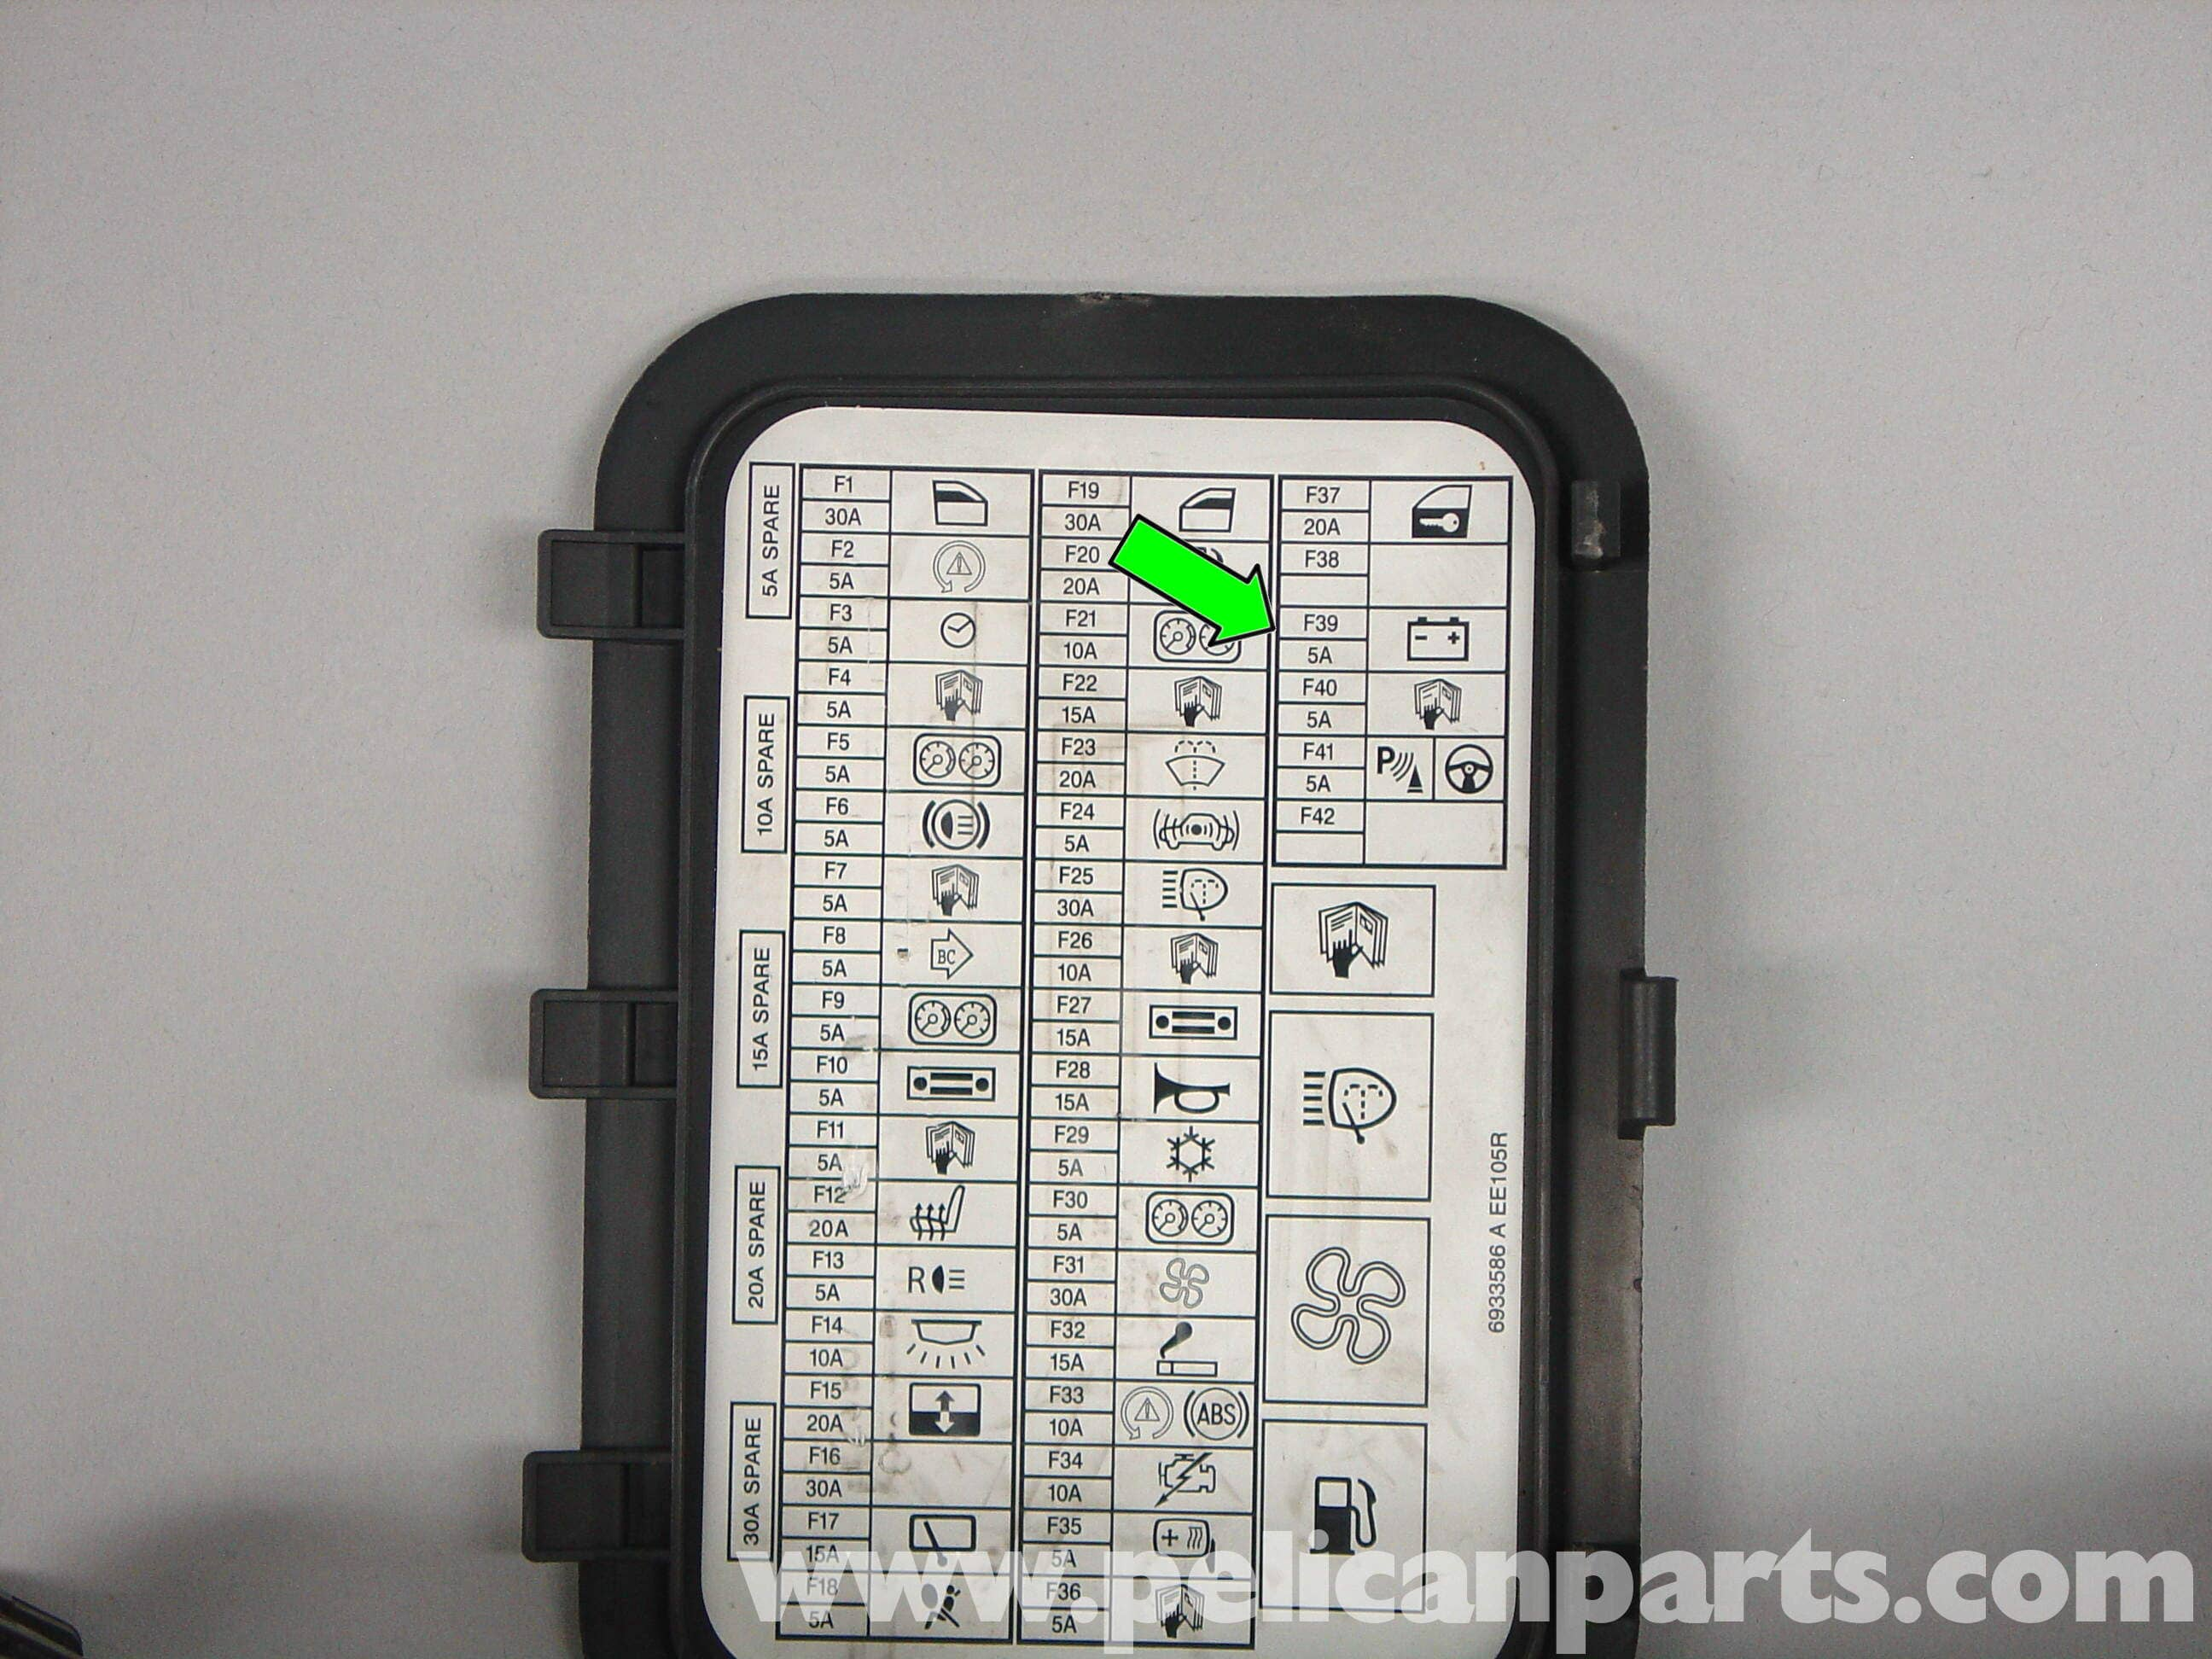 mini cooper r56 fuse box diagram simple wiring diagram2012 mini cooper countryman fuse box diagram wiring library 2002 mini cooper fuse diagram mini cooper r56 fuse box diagram